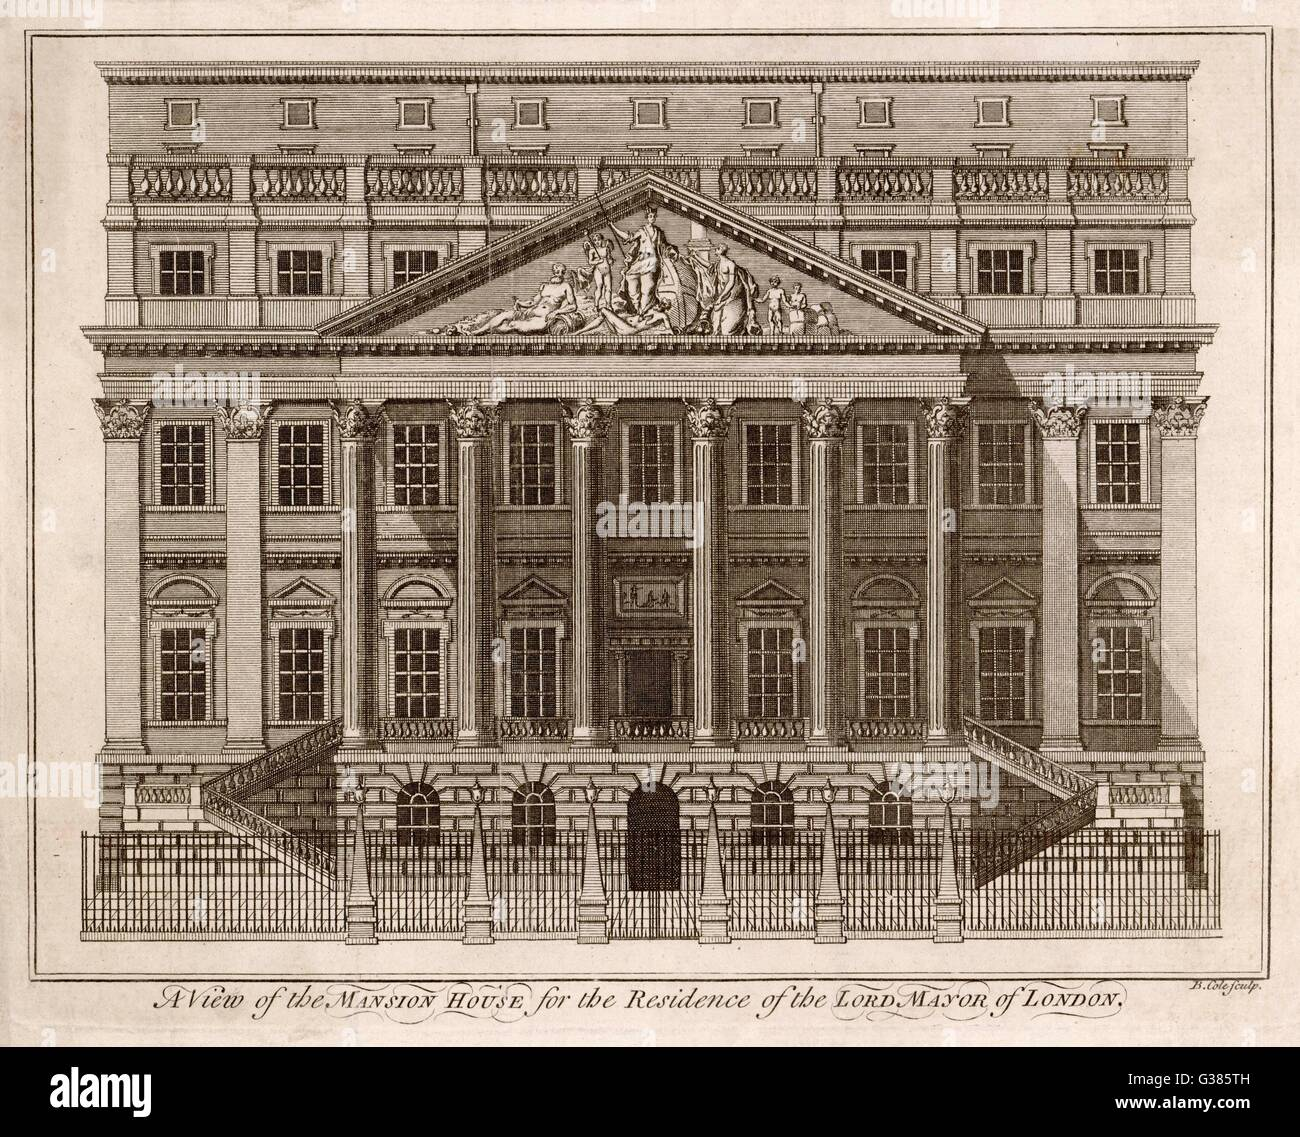 Mansion House, the residence  of the Lord Mayor of London.         Date: 1750 - Stock Image